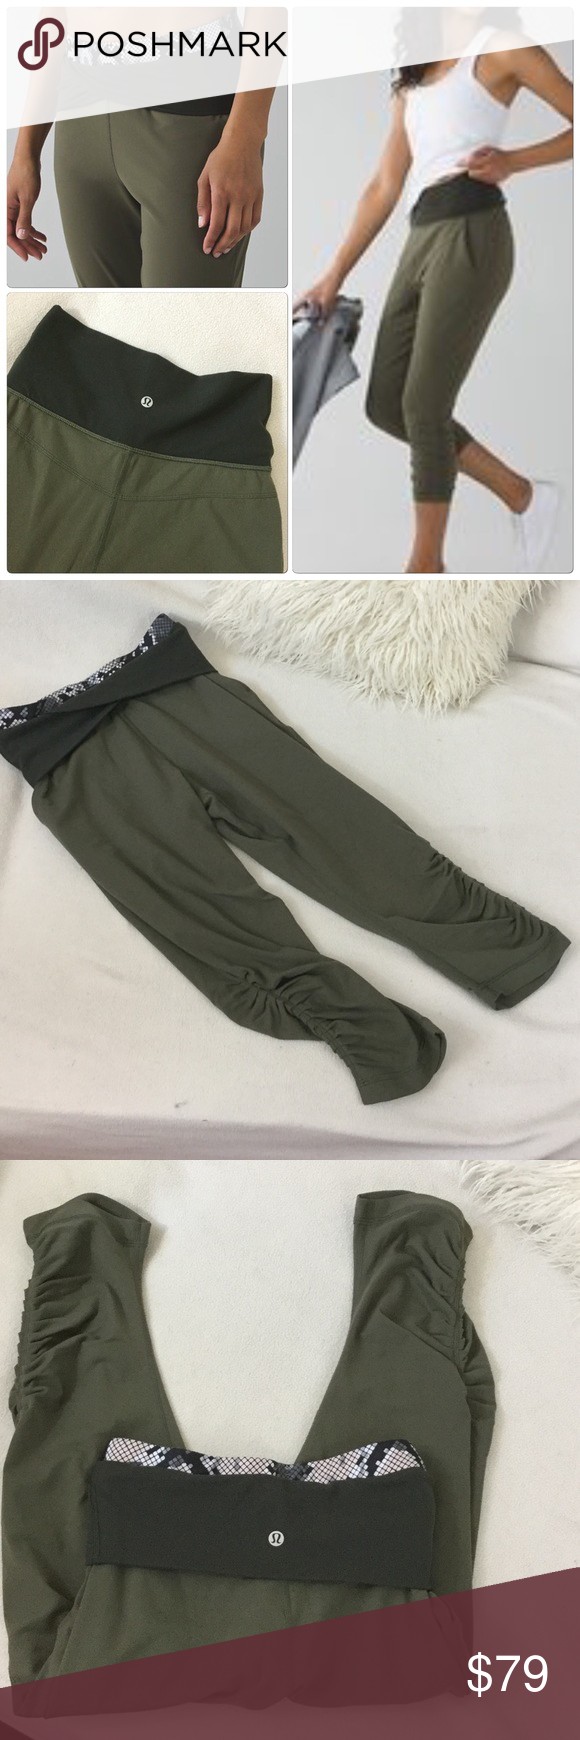 Lululemon olive green cropped workout pants Lululemon olive green cropped workout pants with foldover waist design if desired.  Comfy fit with a relaxed upper and cinched hems. Excellent condition hardly worn. lululemon athletica Pants Ankle & Cropped